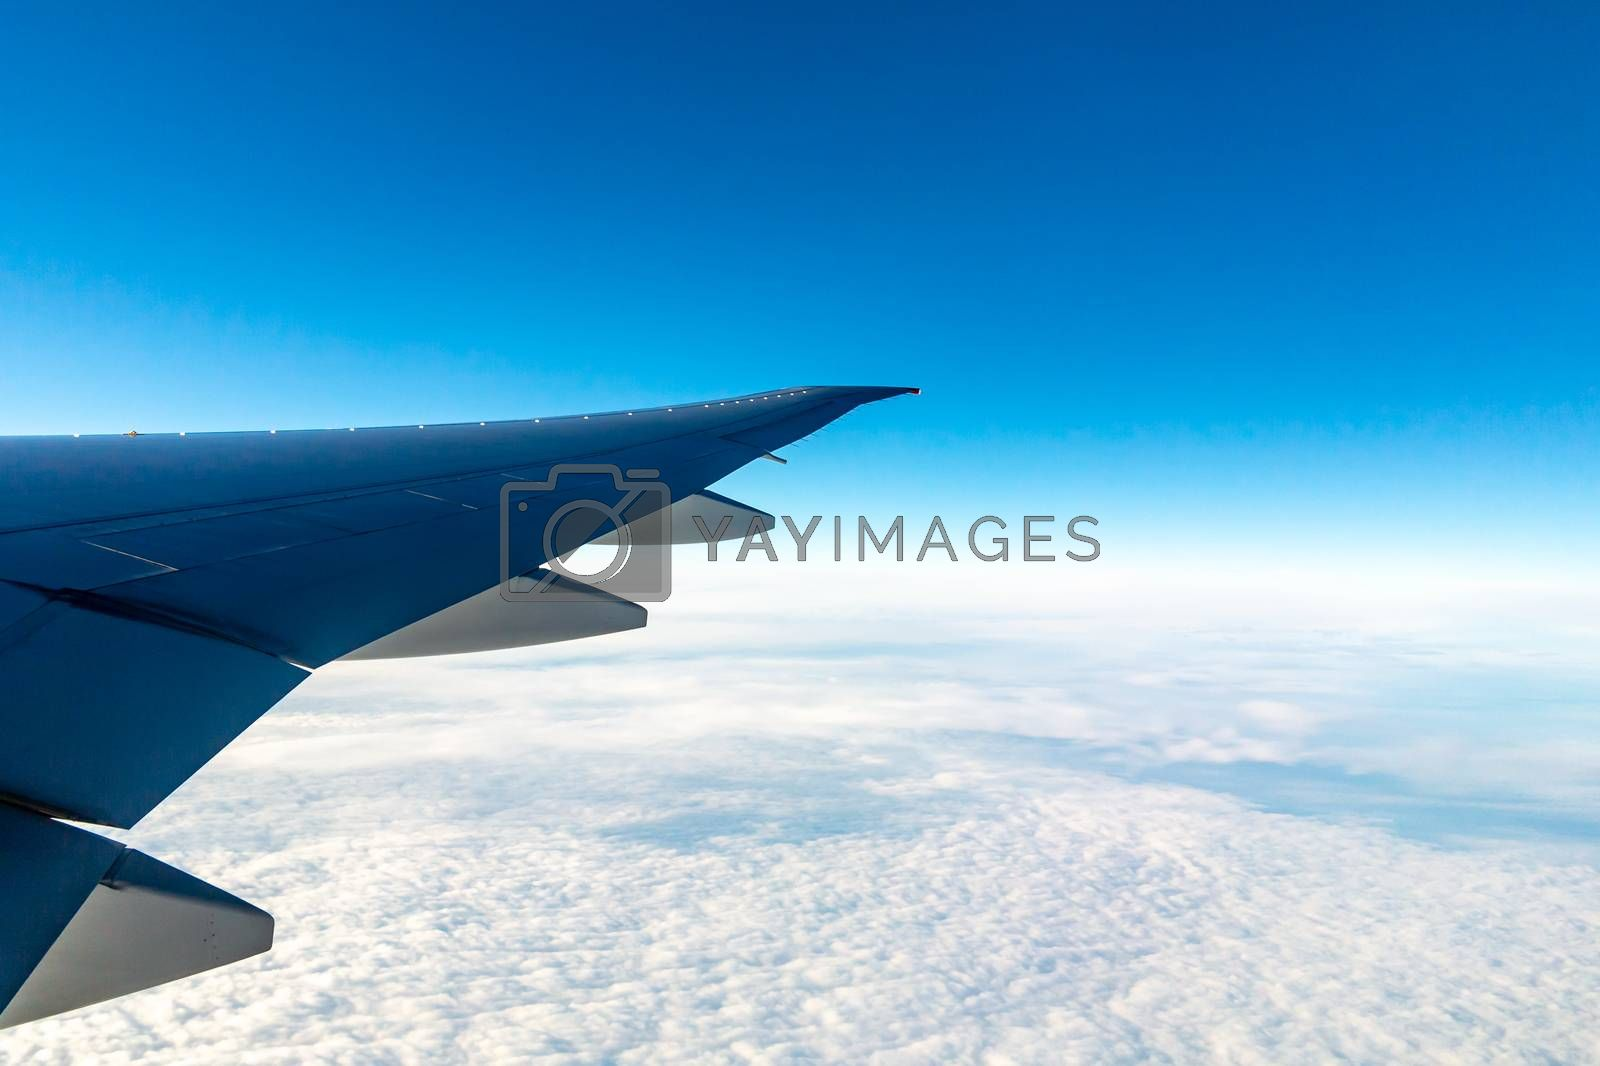 Clouds under the wing of an airplane. Amazing view from the window of the airplane during the flight by galsand